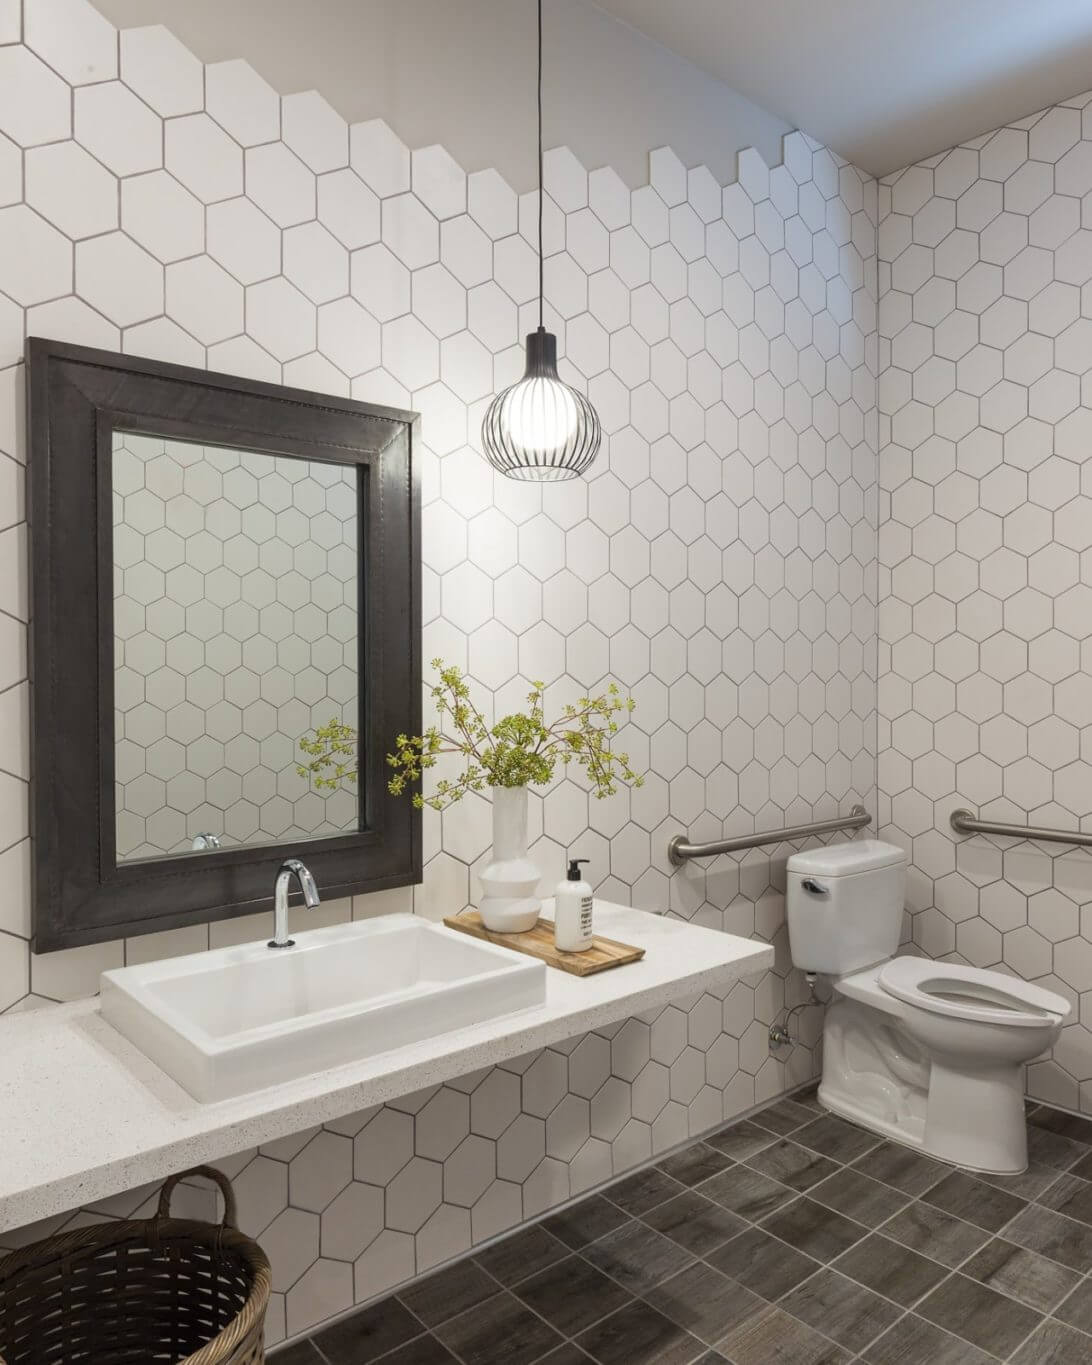 Bathroom Tile: Your Complete Guide To Bathroom Tile